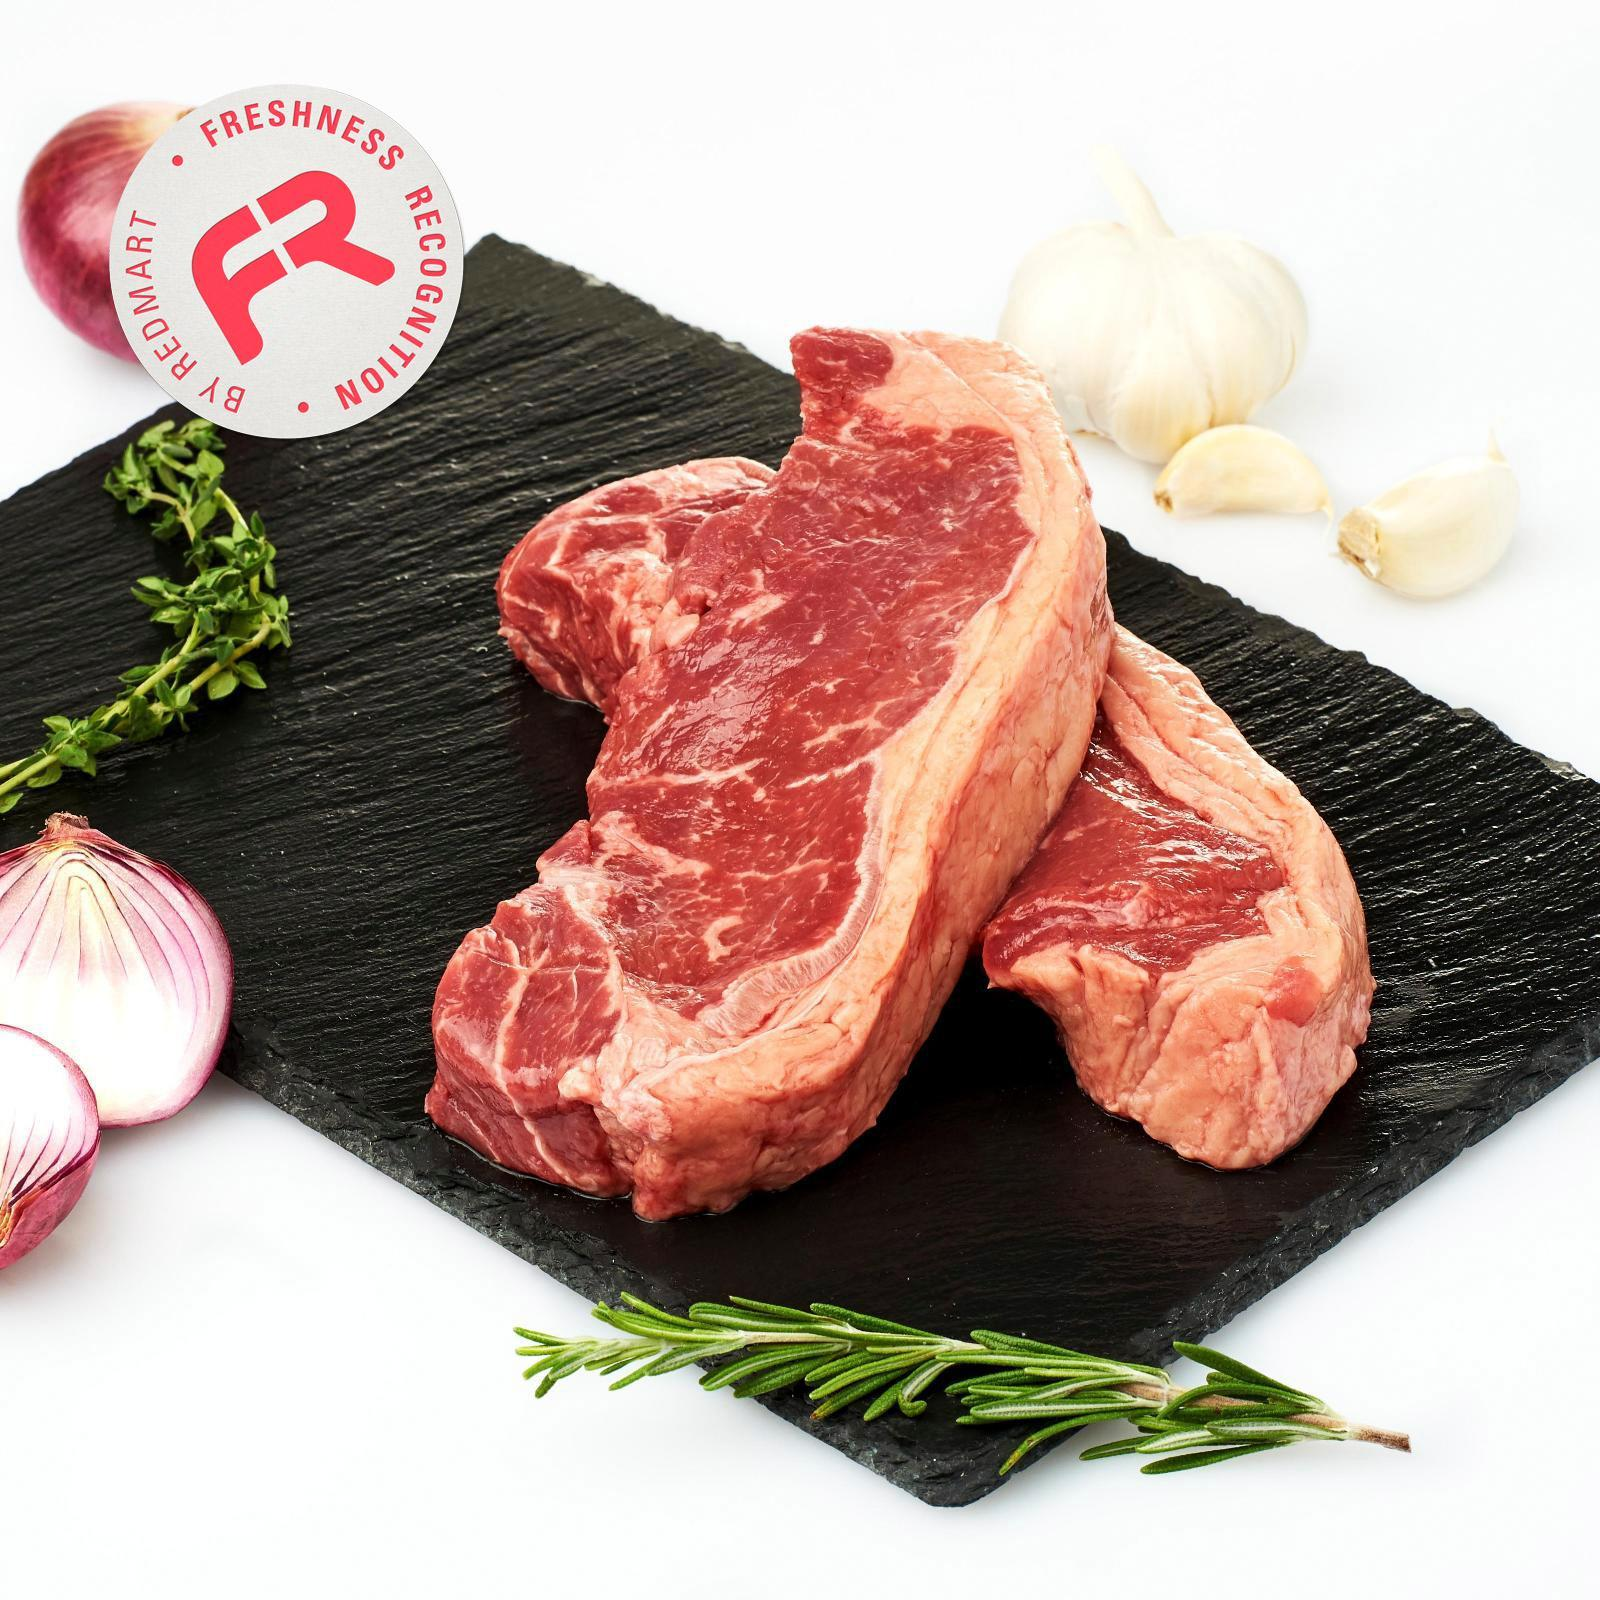 Redmart Grass Fed Angus Beef Sirloins (2 Pcs) - New Zealand By Redmart.